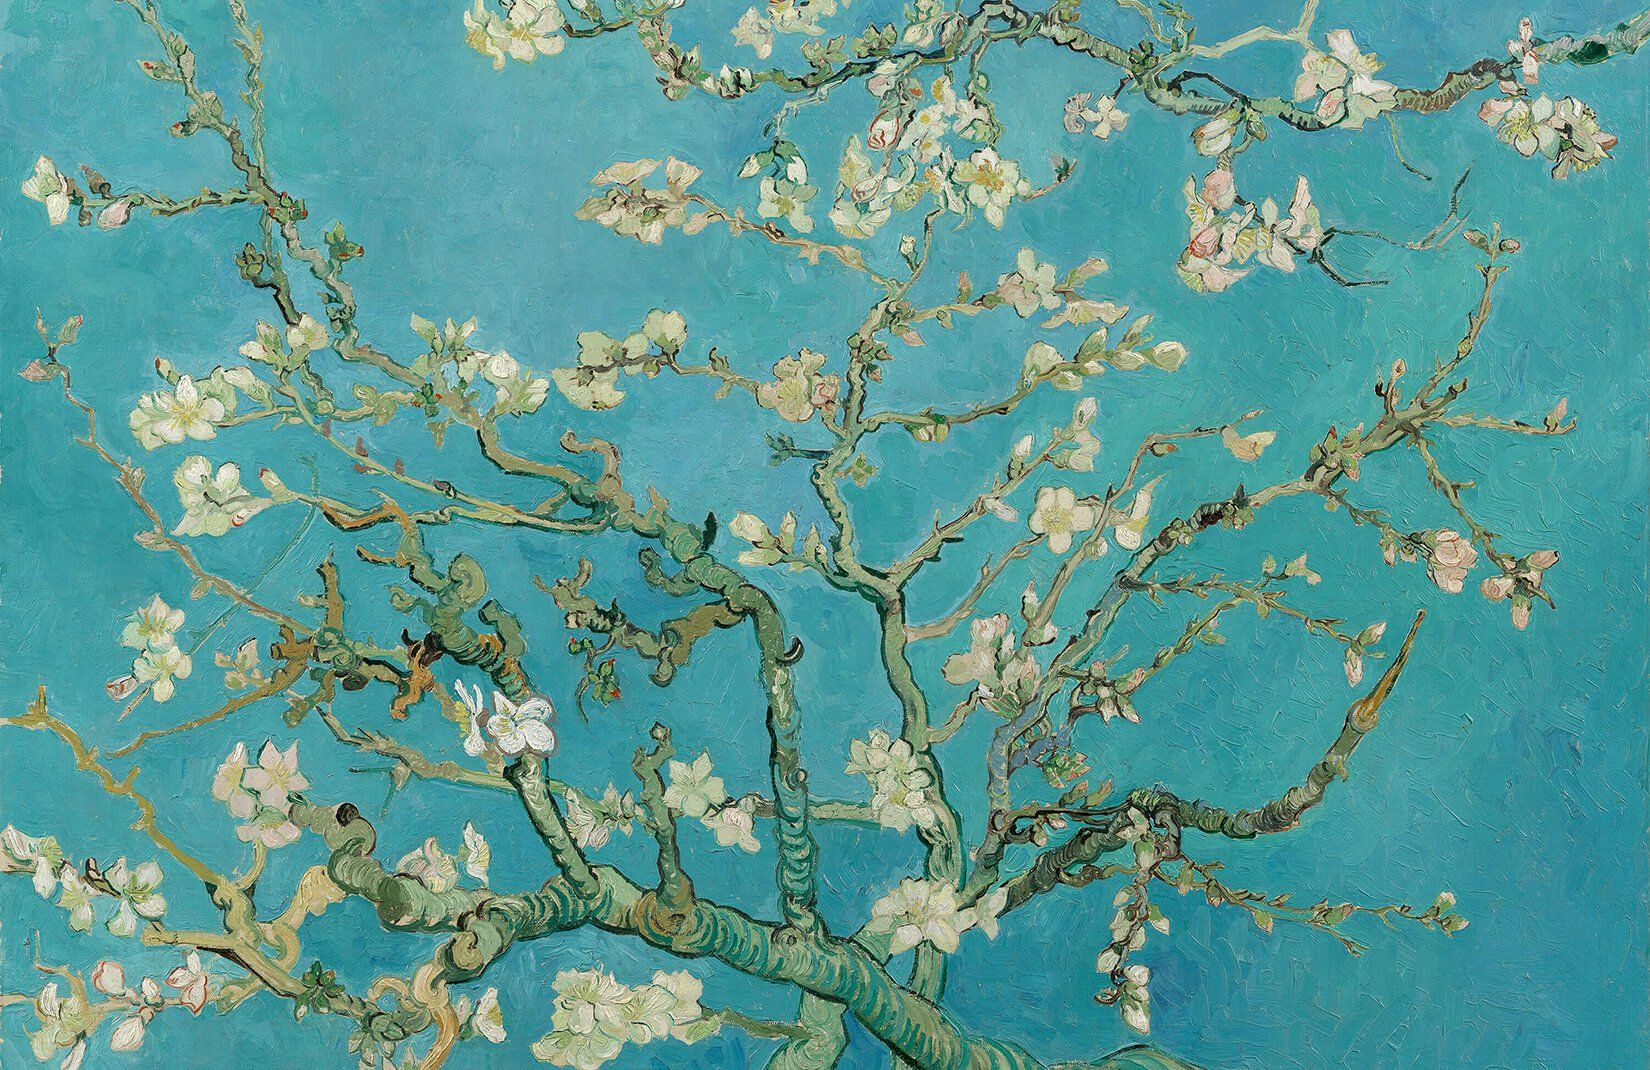 1650x1070 Almond Branches by Van Gogh Wallpaper - Murals Wallpaper